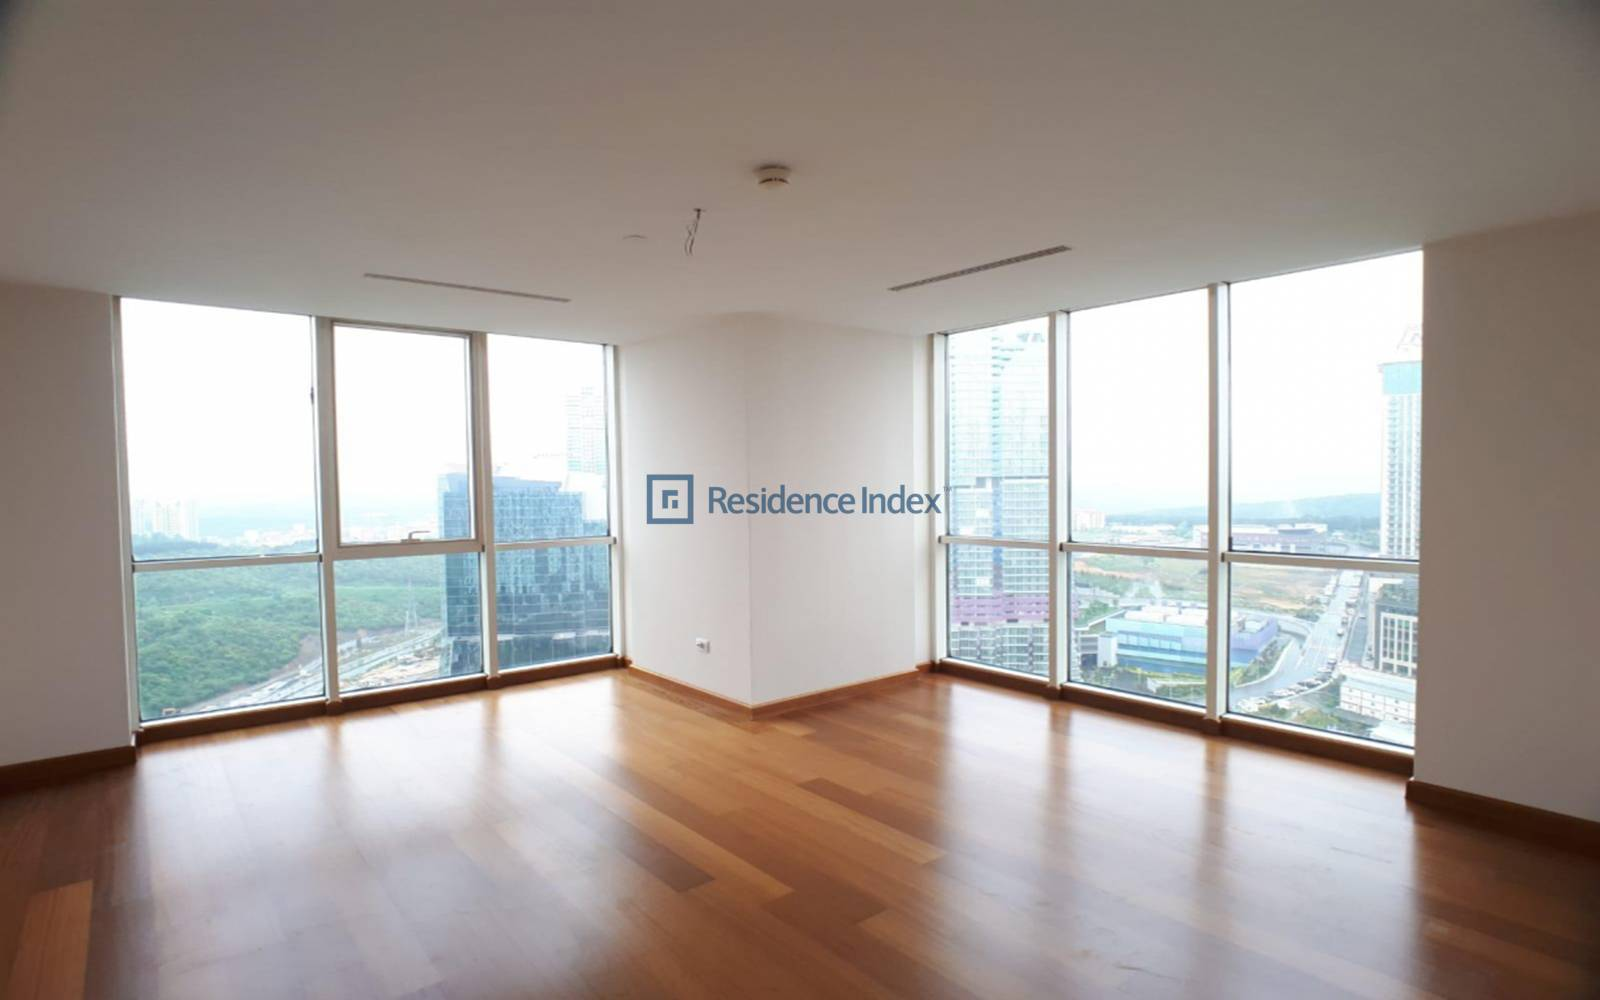 Mashattan - For Sale 3 + 1 High Floor Spacious Apartment